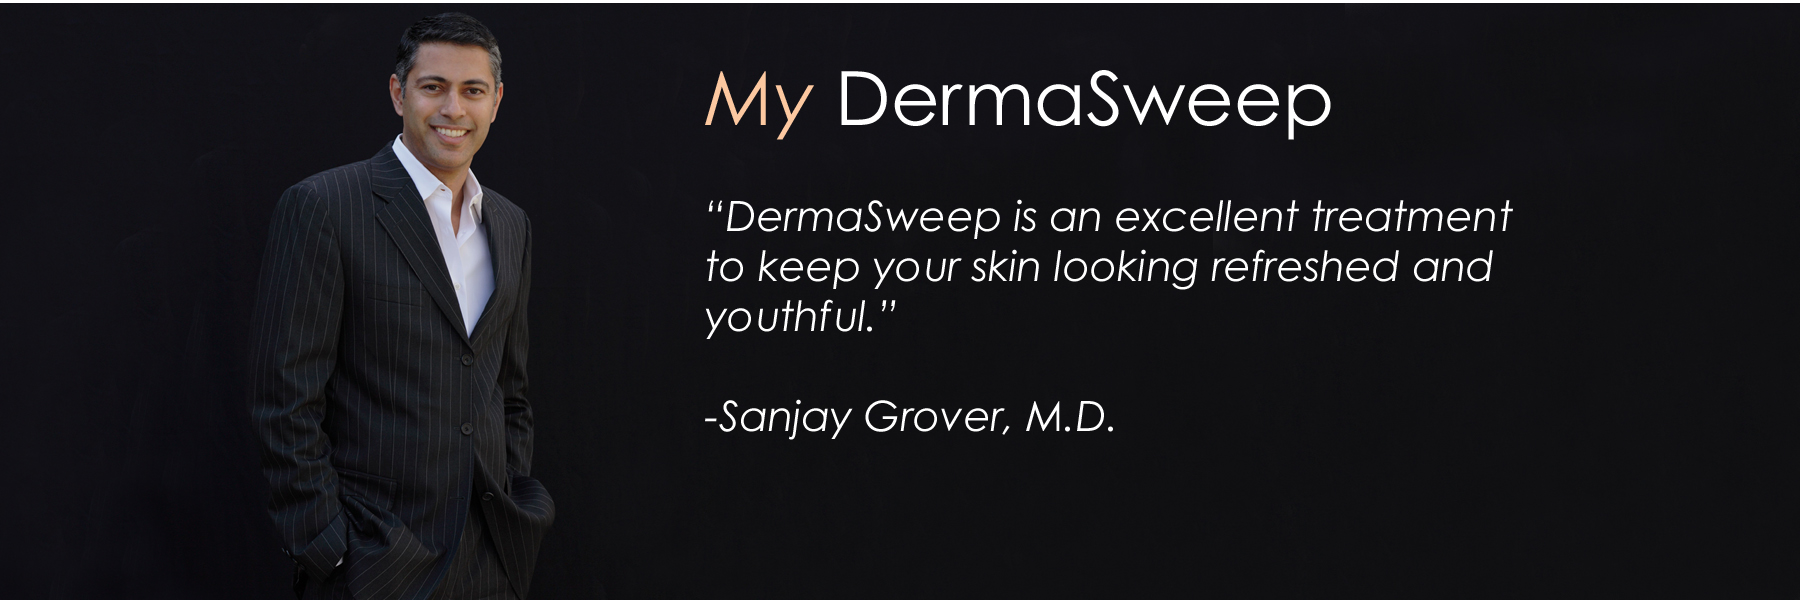 DermaSweep_Web_Header_Dr.Grover_1800_withText